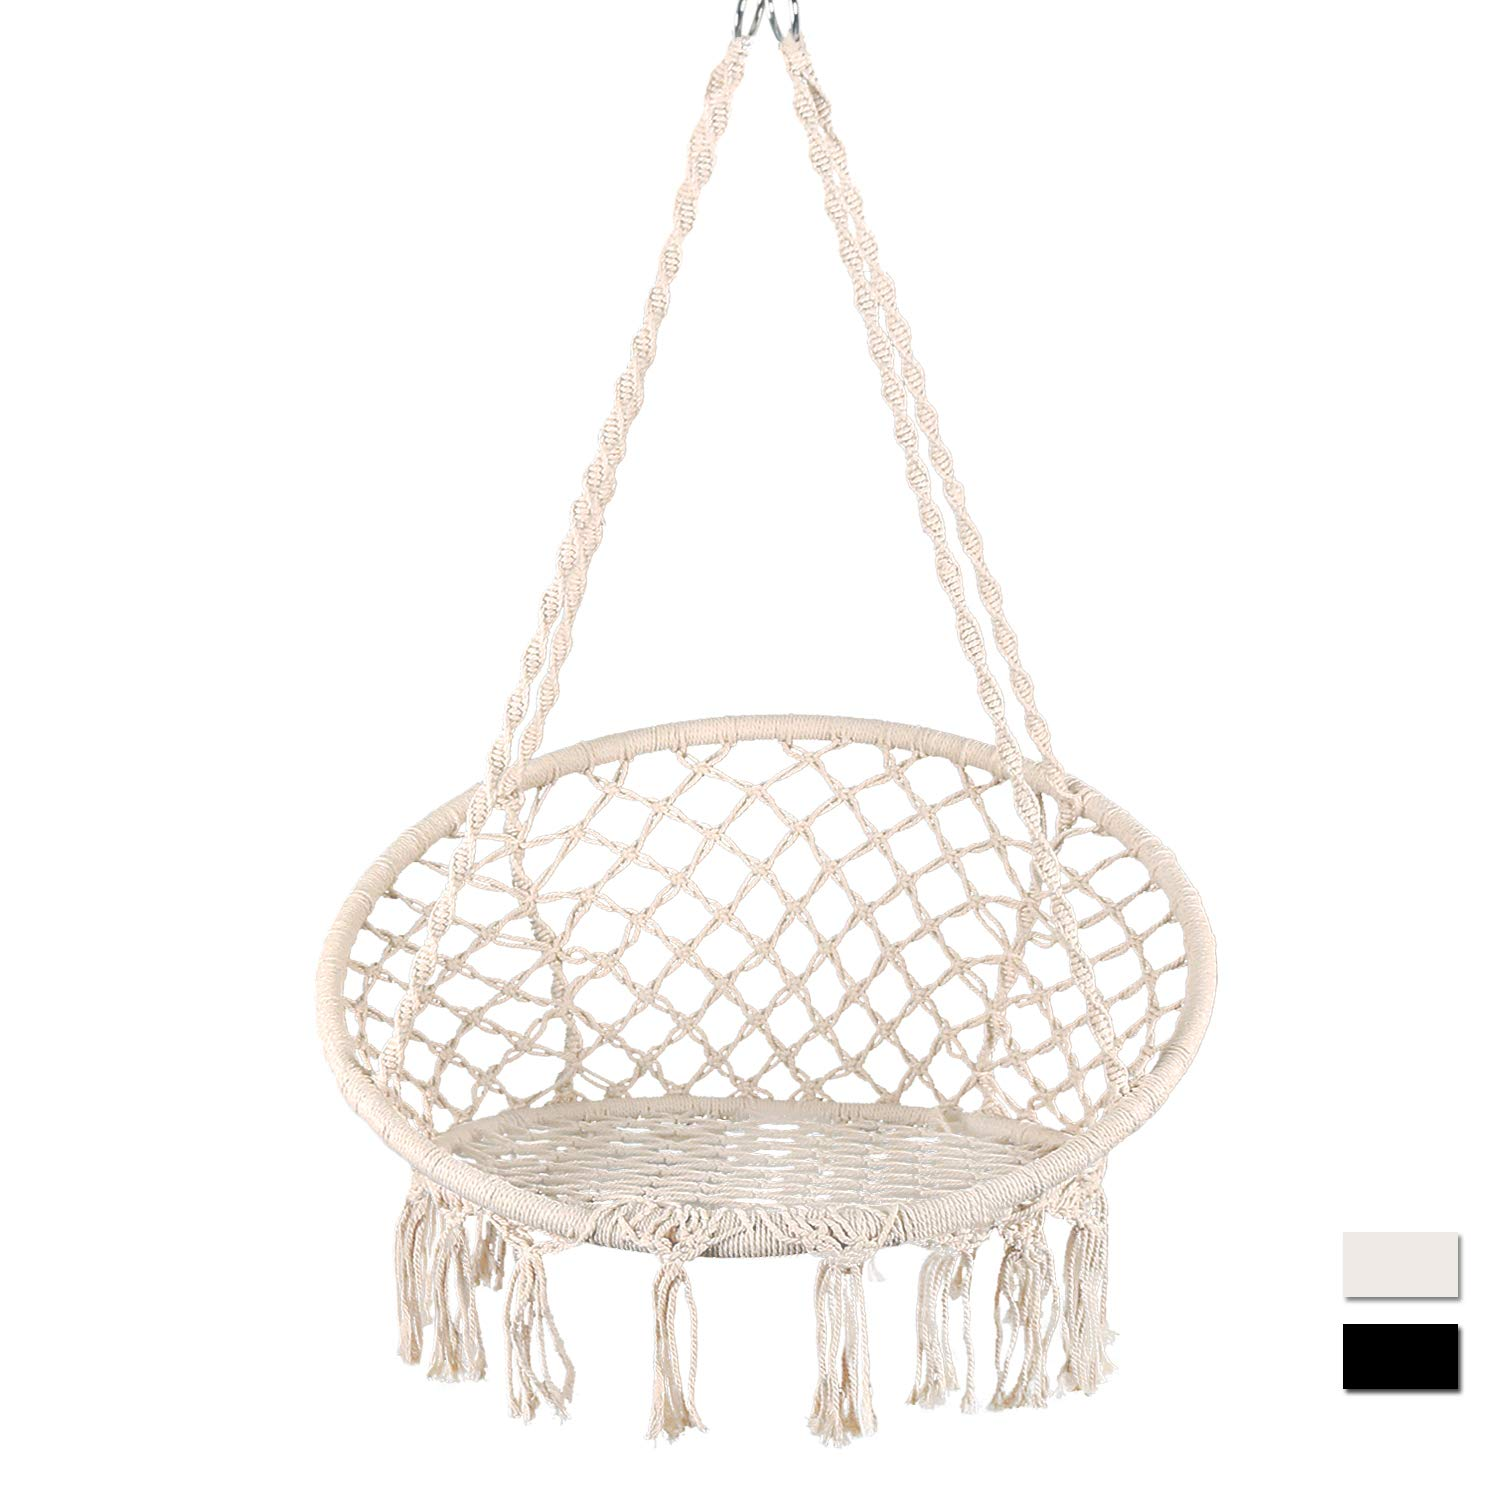 Bathonly Hammock Chair Macrame Swing Handmade Knitted Hanging Swing Chair, Cotton Rope Chair for Indoor Outdoor, Bedroom, Yard, Porch,-330lb Capacity Beige